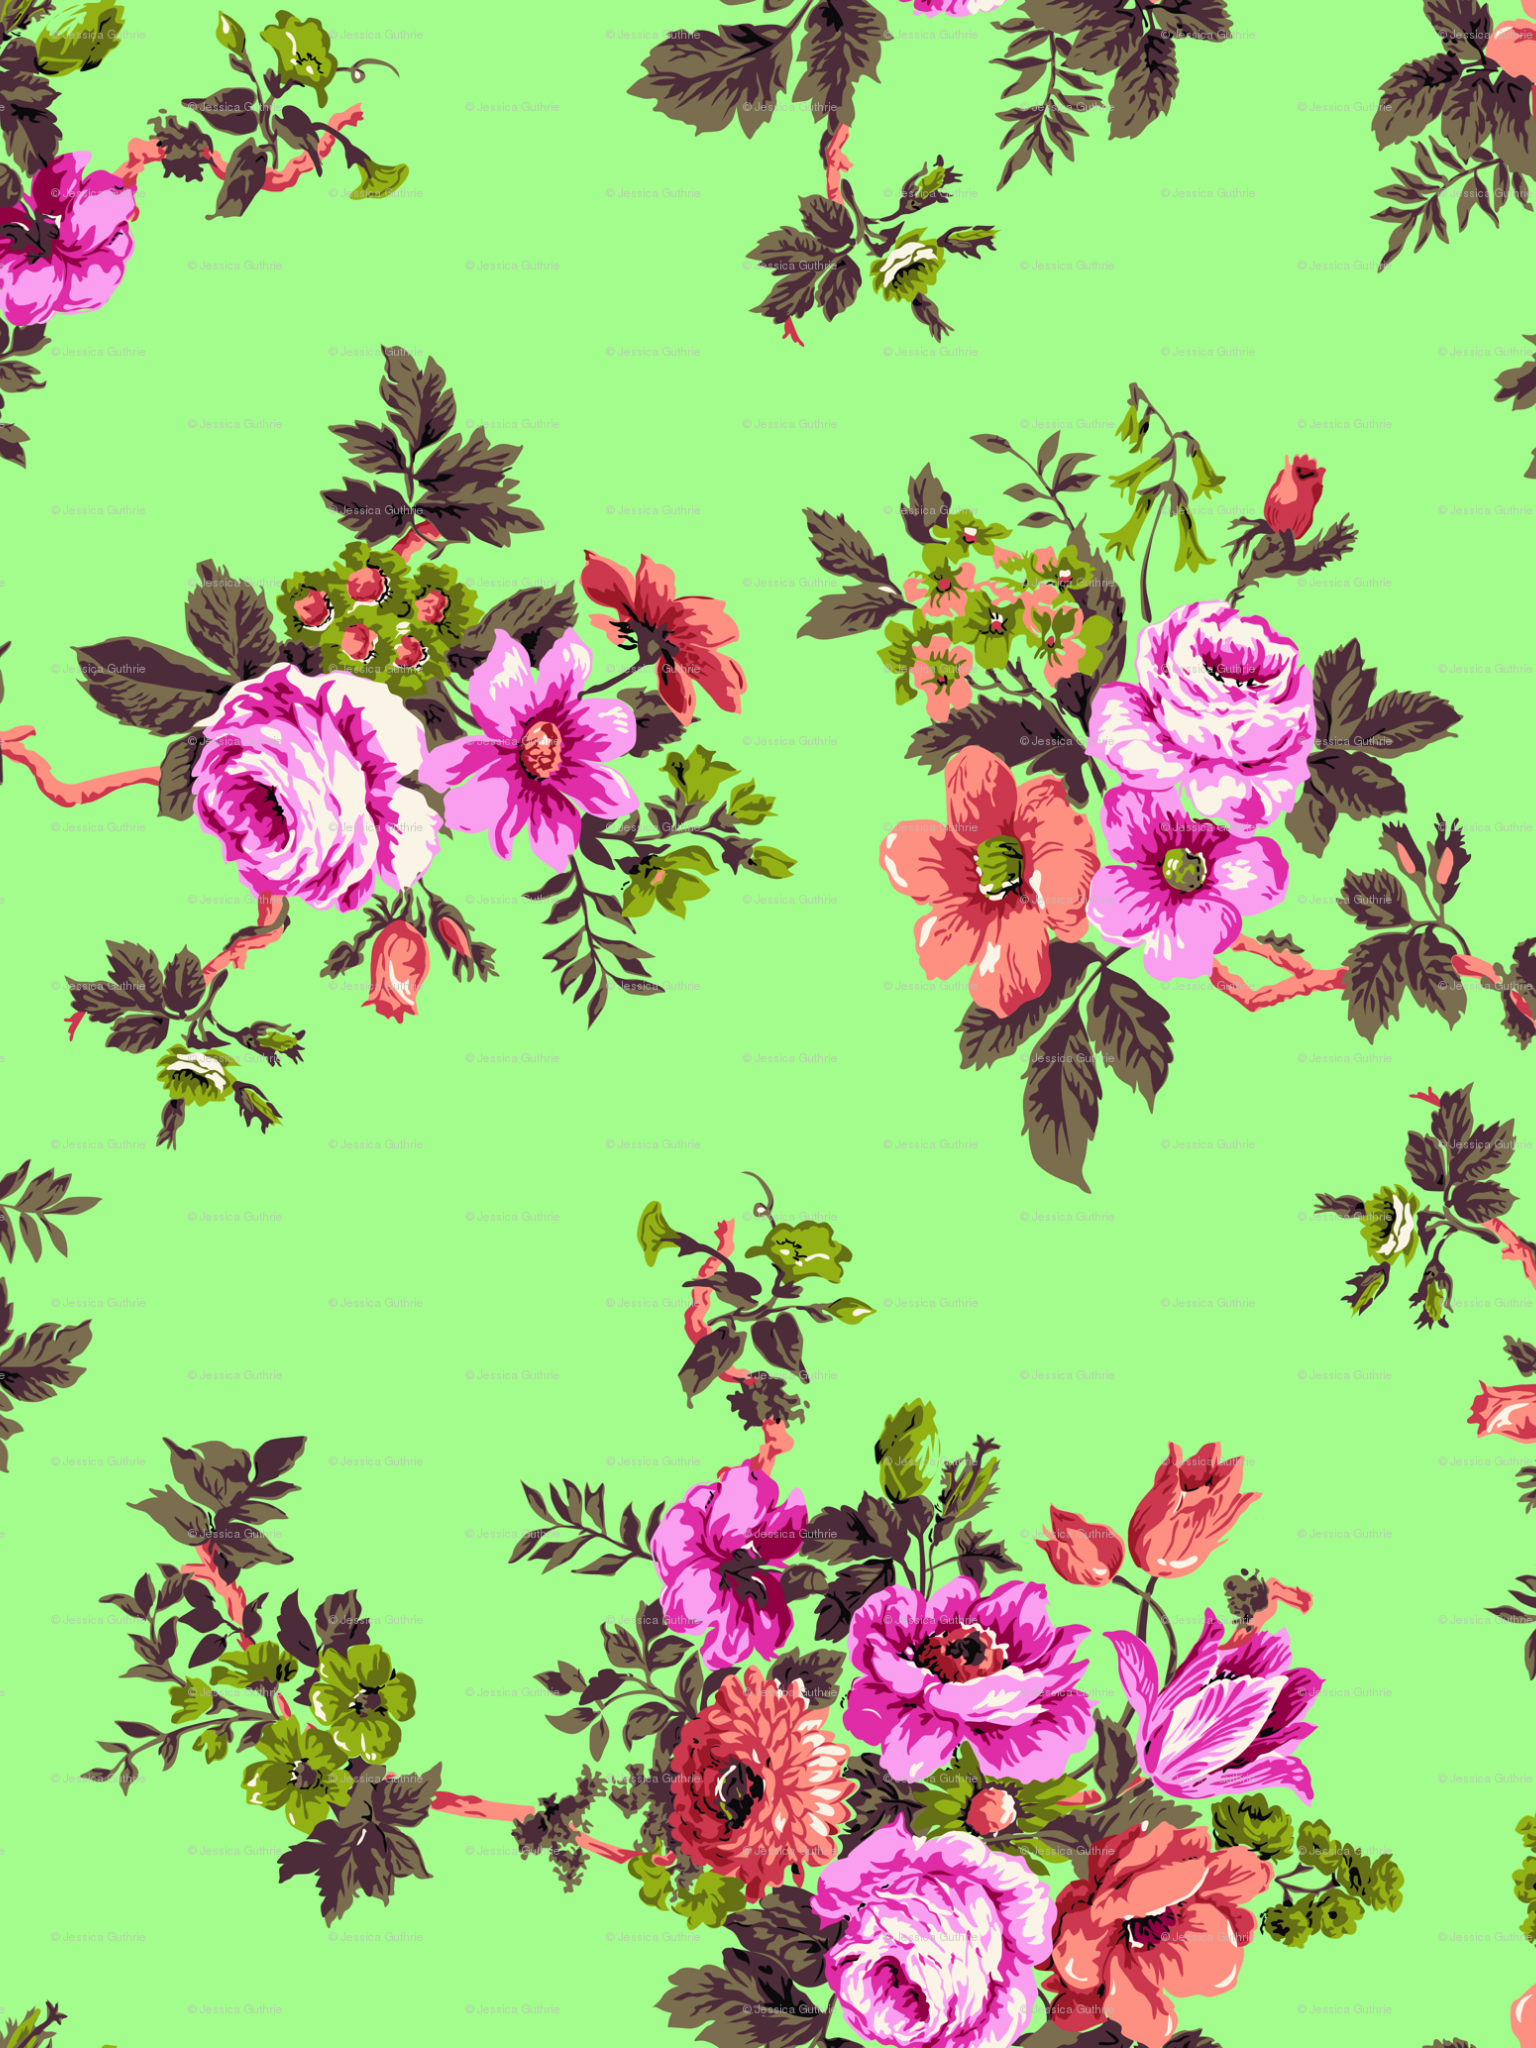 Free Download Vintage Floral Print Desktop Wallpaper Japanese